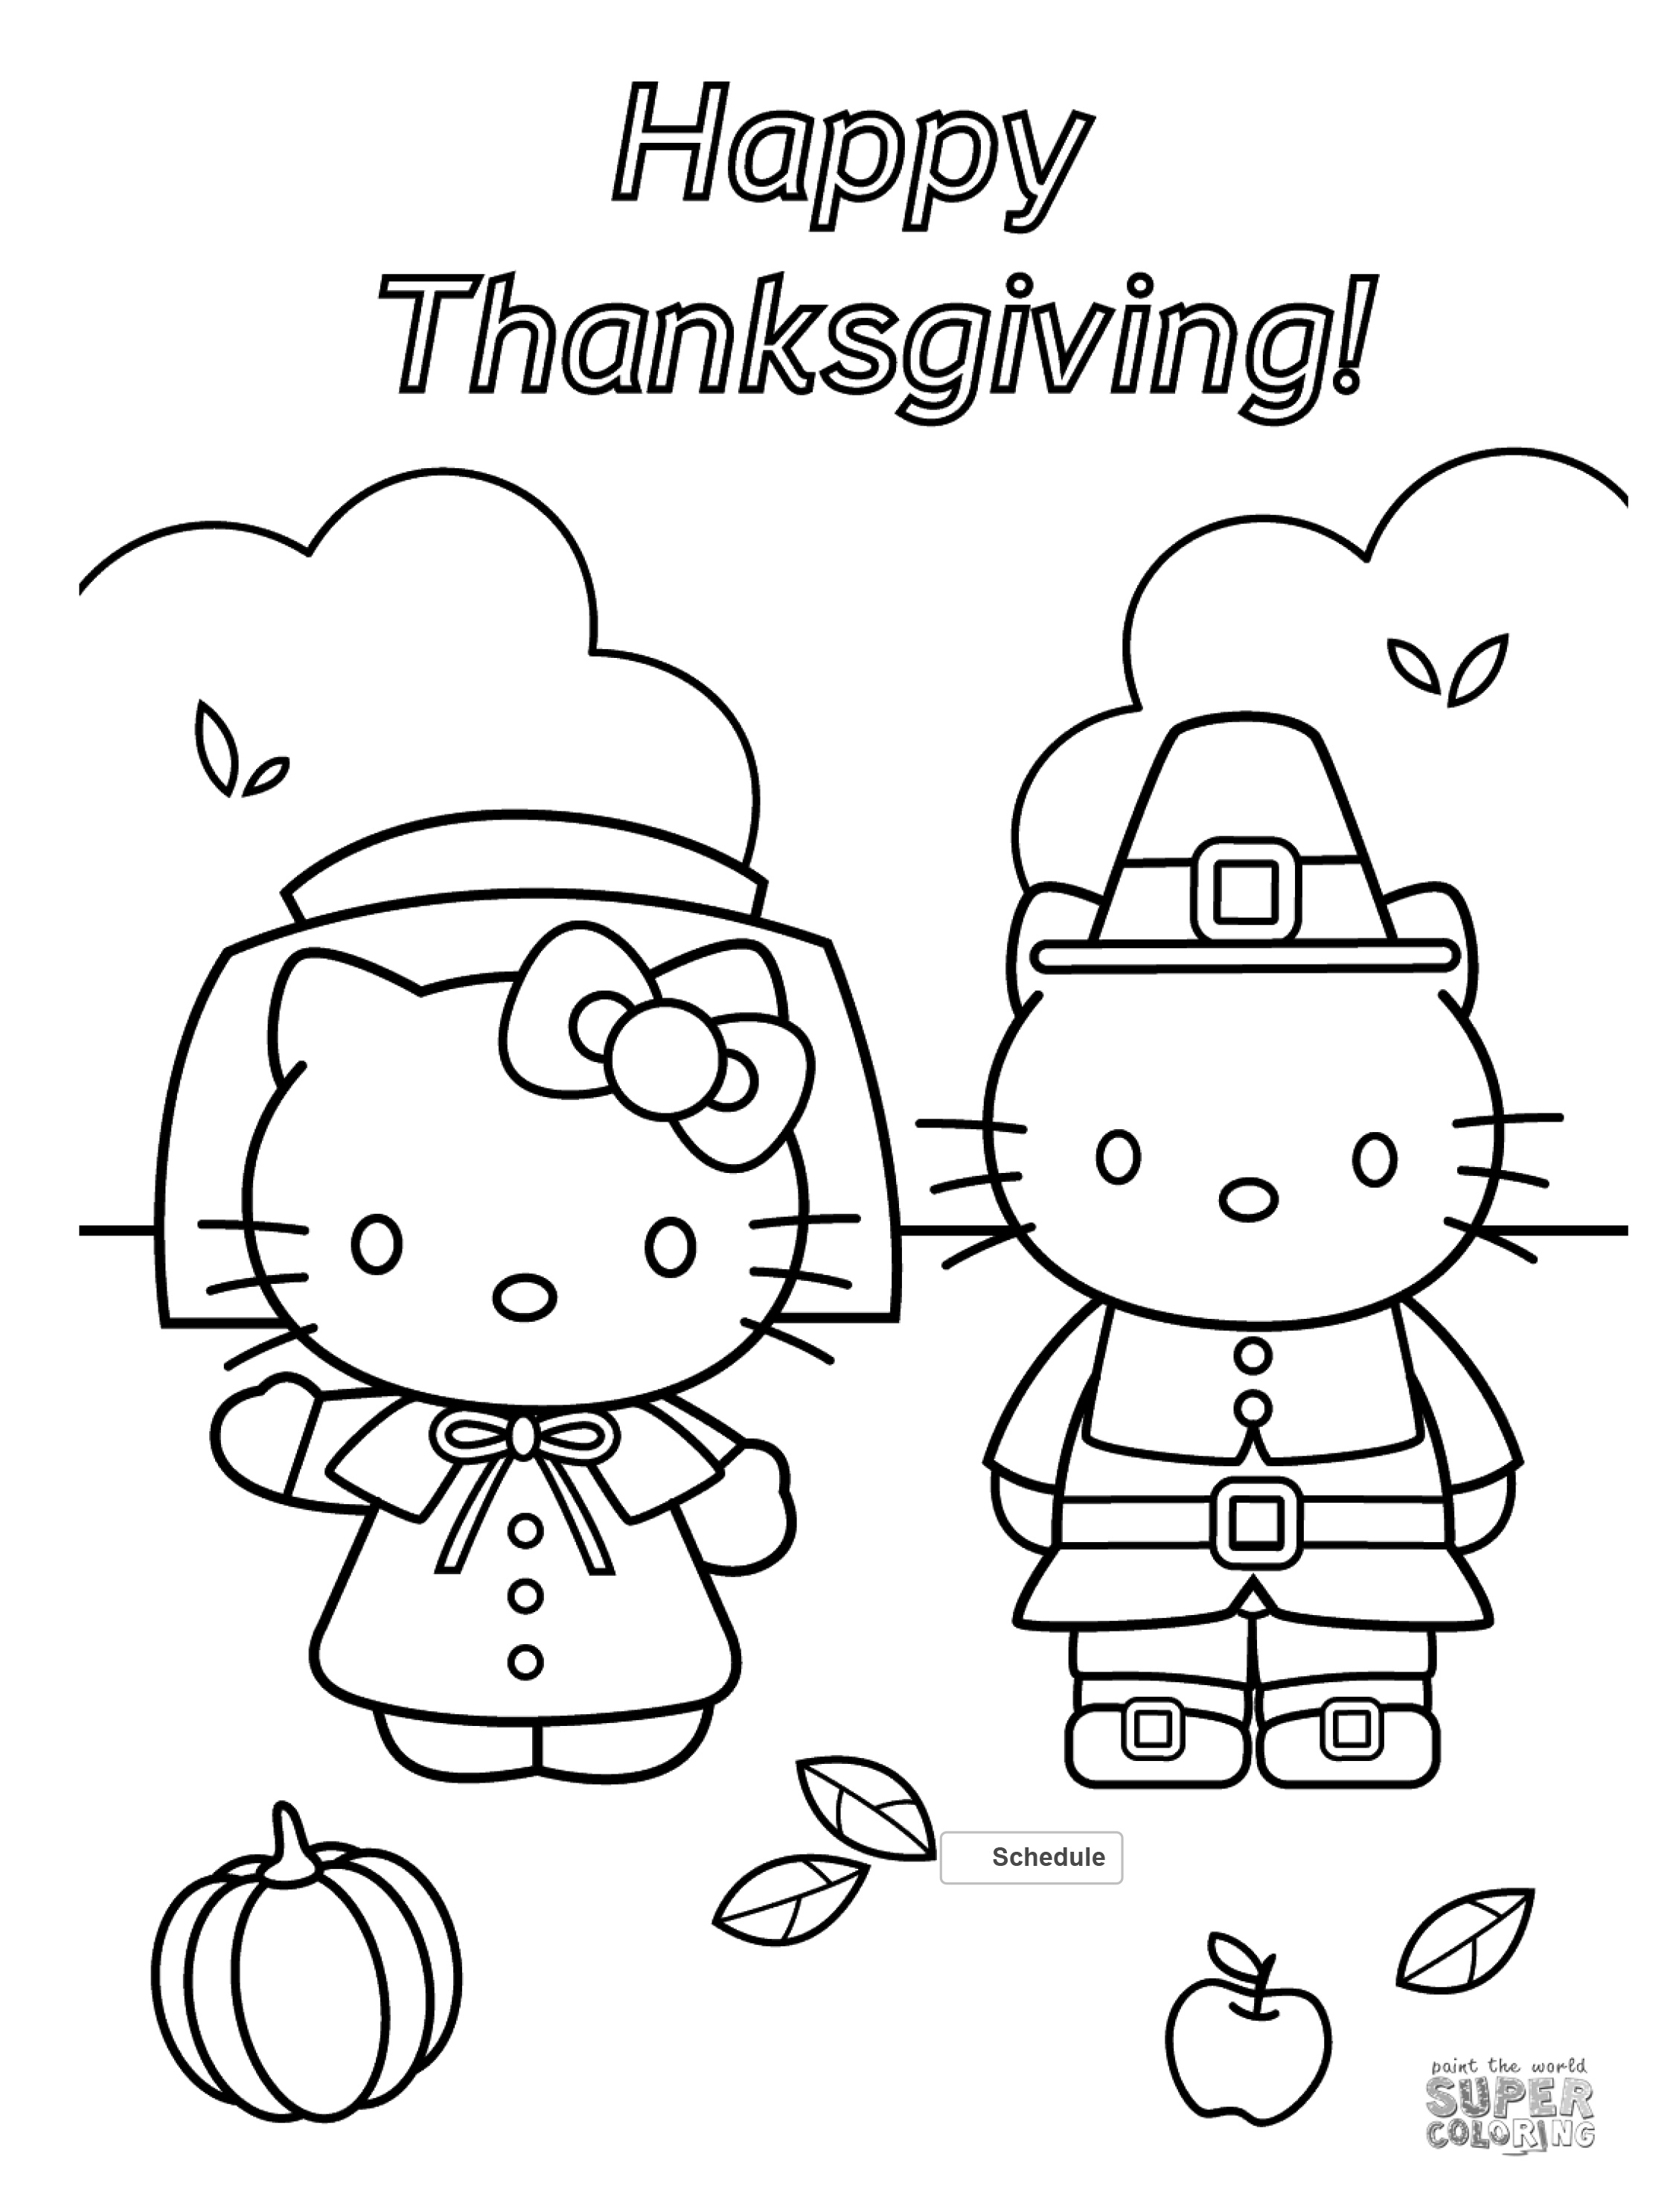 thanksgiving coloring pages printable FREE Thanksgiving Coloring Pages for Adults & Kids   Happiness is  thanksgiving coloring pages printable